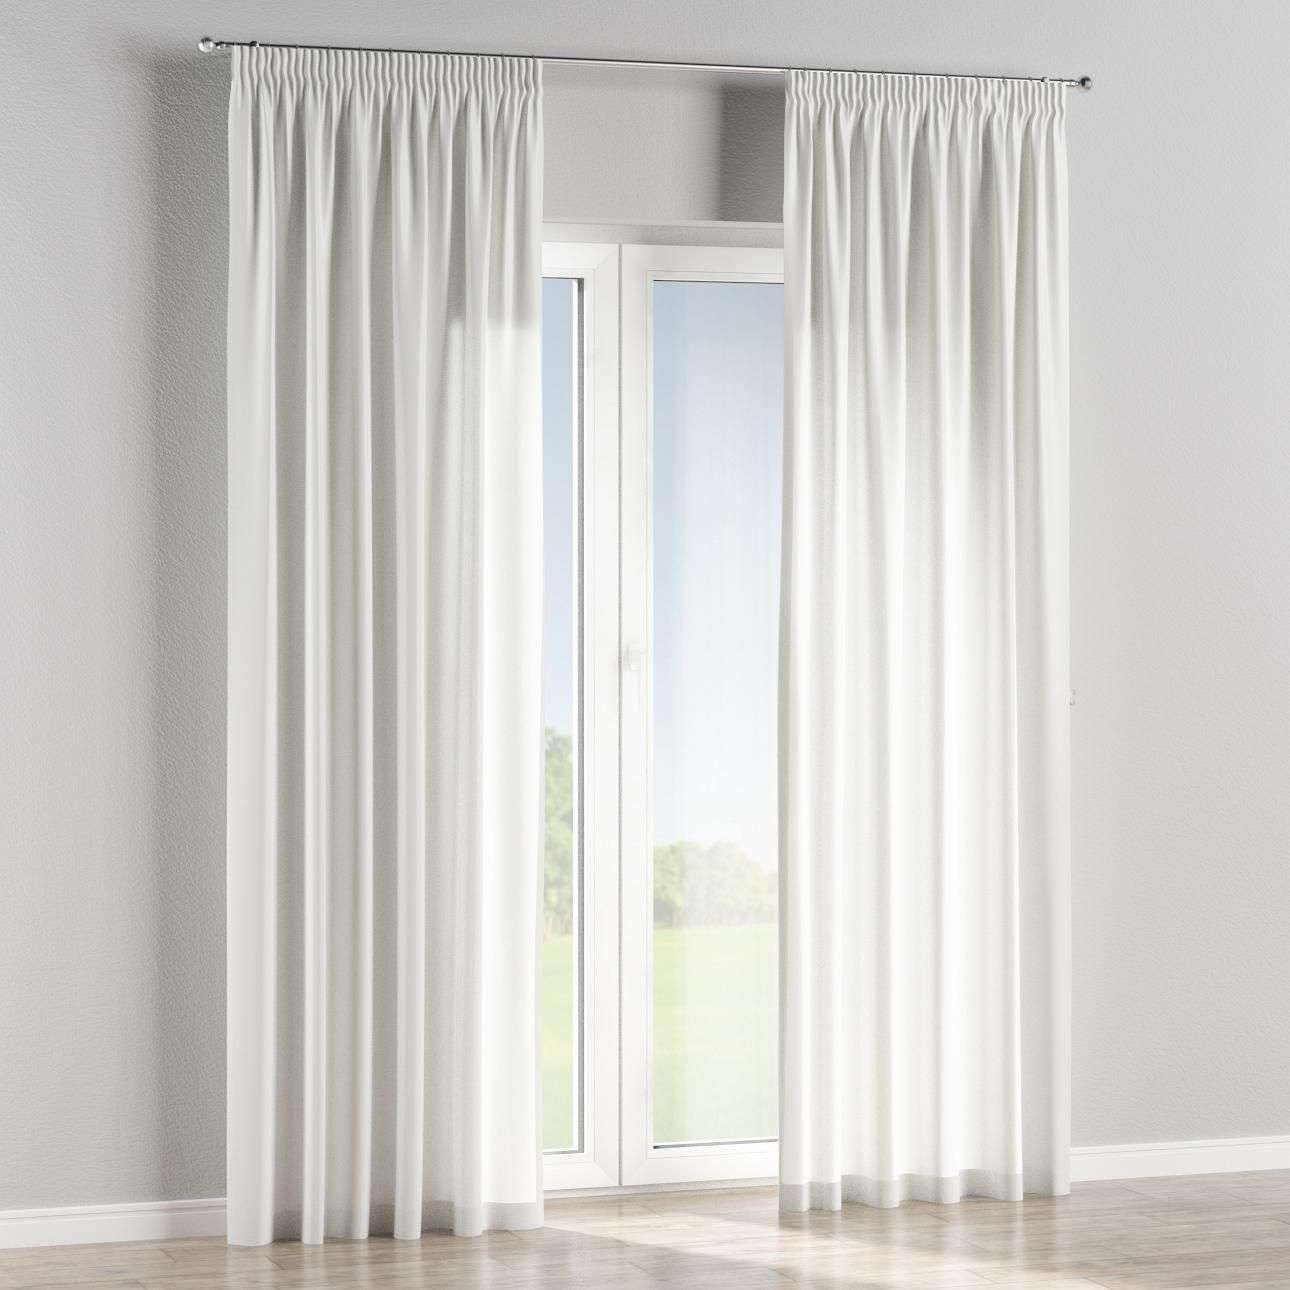 Pencil pleat curtains in collection Rustica, fabric: 138-25